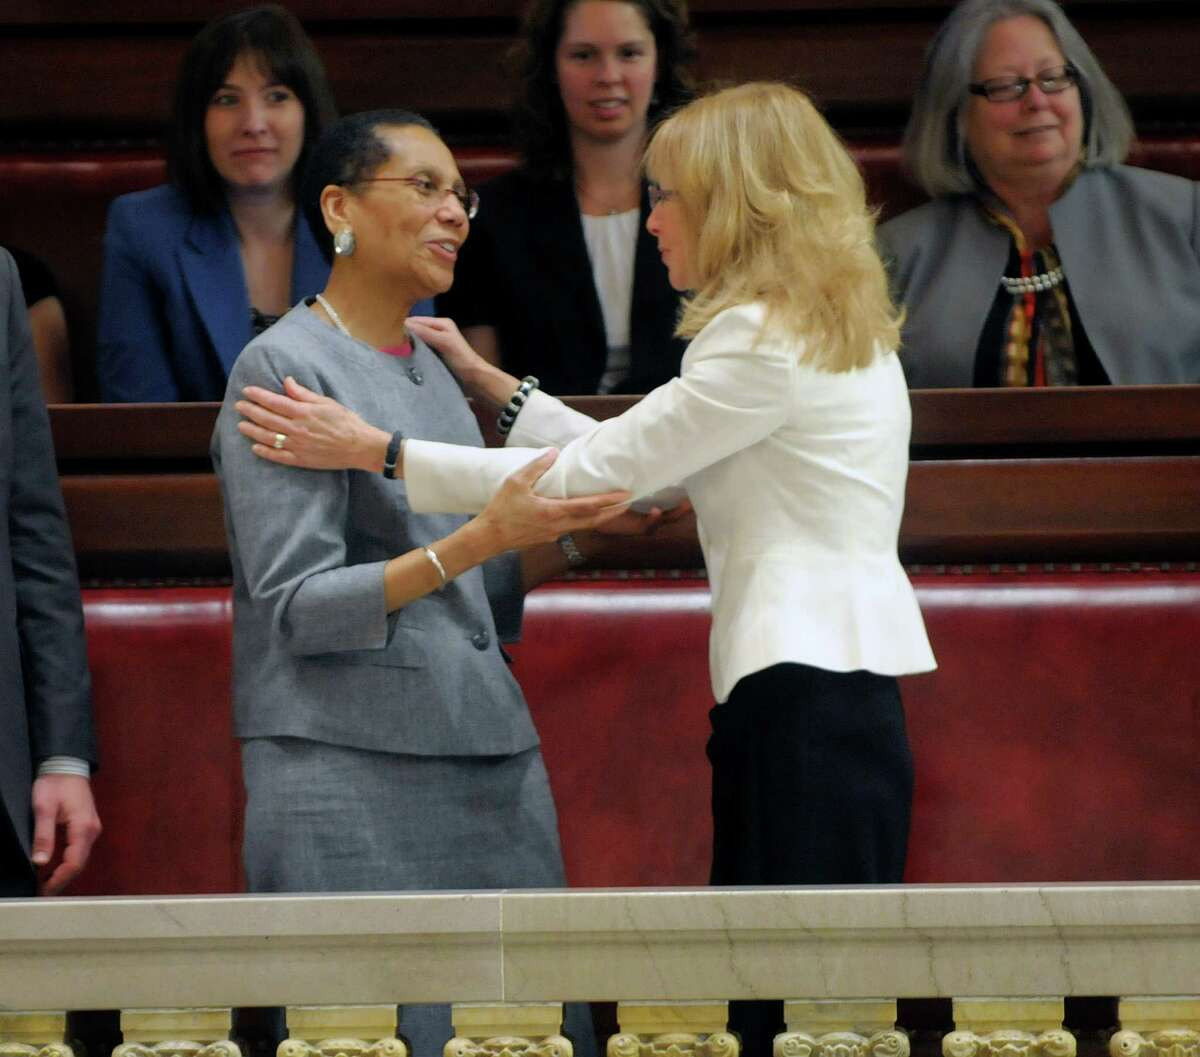 Court of Appeals Justice Sheila Abdus-Salaam, left, talks with Albany City Court Judge, Rachel Kretser after Justice Sheila Abdus-Salaam was confirmed by the State Senate at the Capitol on Monday, May 6, 2013 in Albany, NY. Justice Sheila Abdus-Salaam is the first African-American woman on the seven-member Court of Appeals. (Paul Buckowski / Times Union)